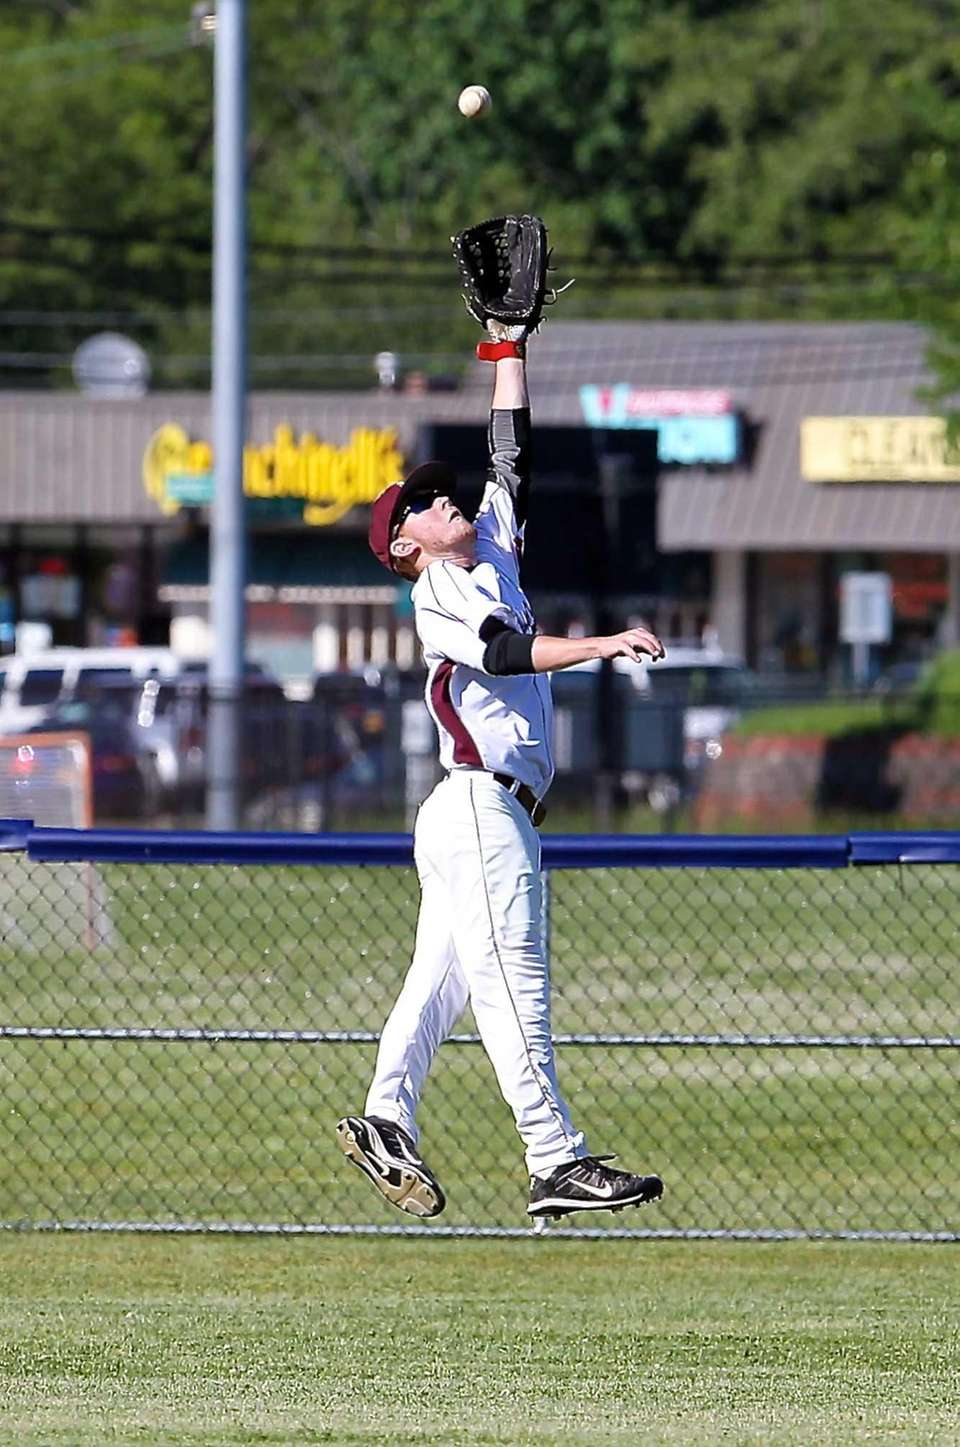 Southampton center fielder Kevin Dexter tries to catch